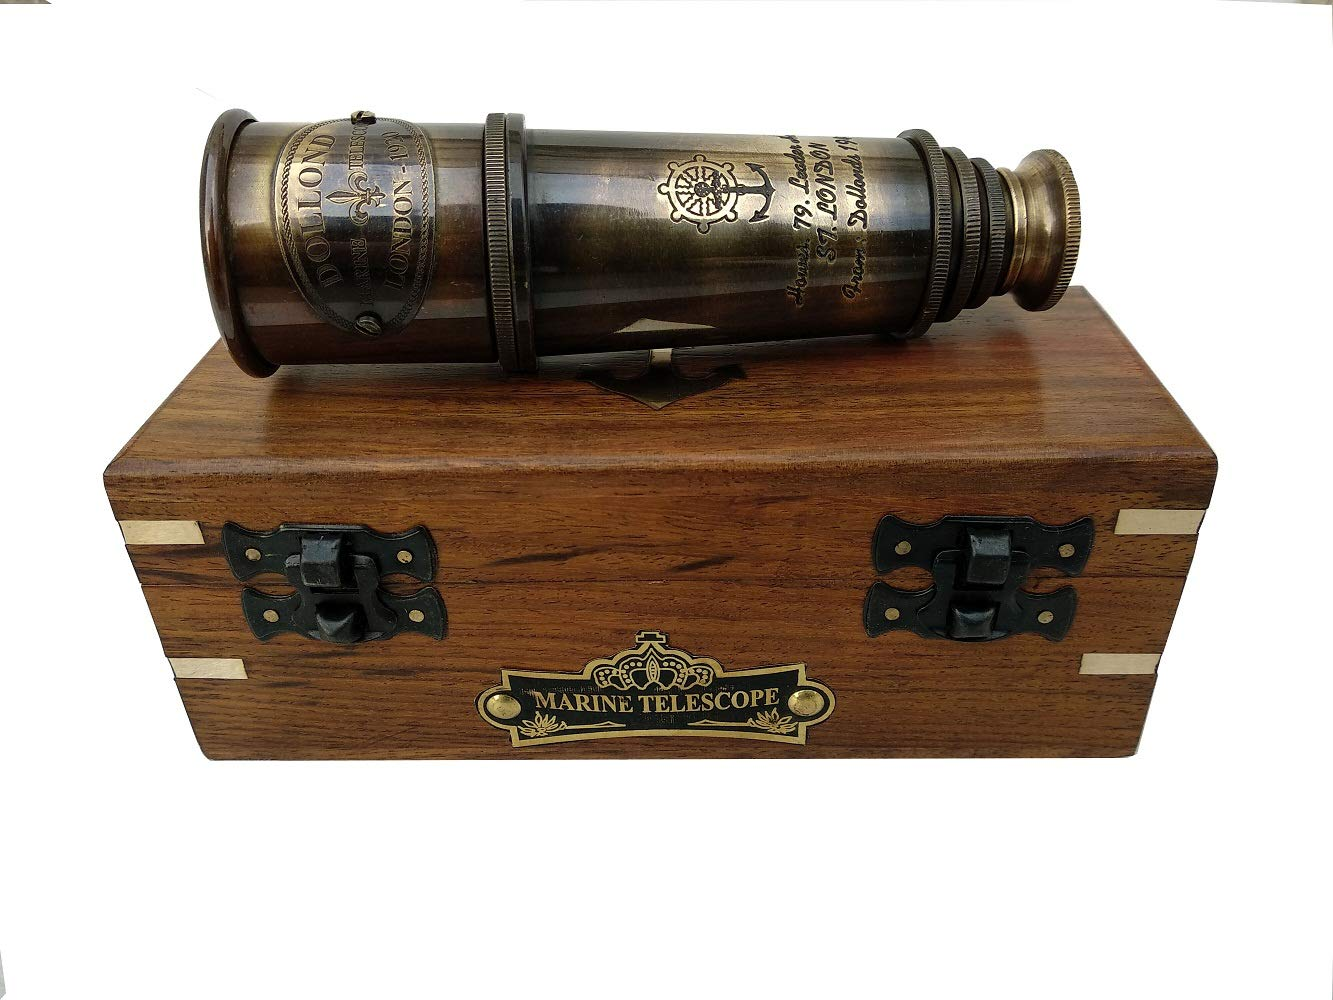 1920 DOLLOND London Brass Maritime Vintage Telescope, Nautical Spyglass Antique Mounted Solid Brass 15 Inch Pirate Telescope with Wooden Box.